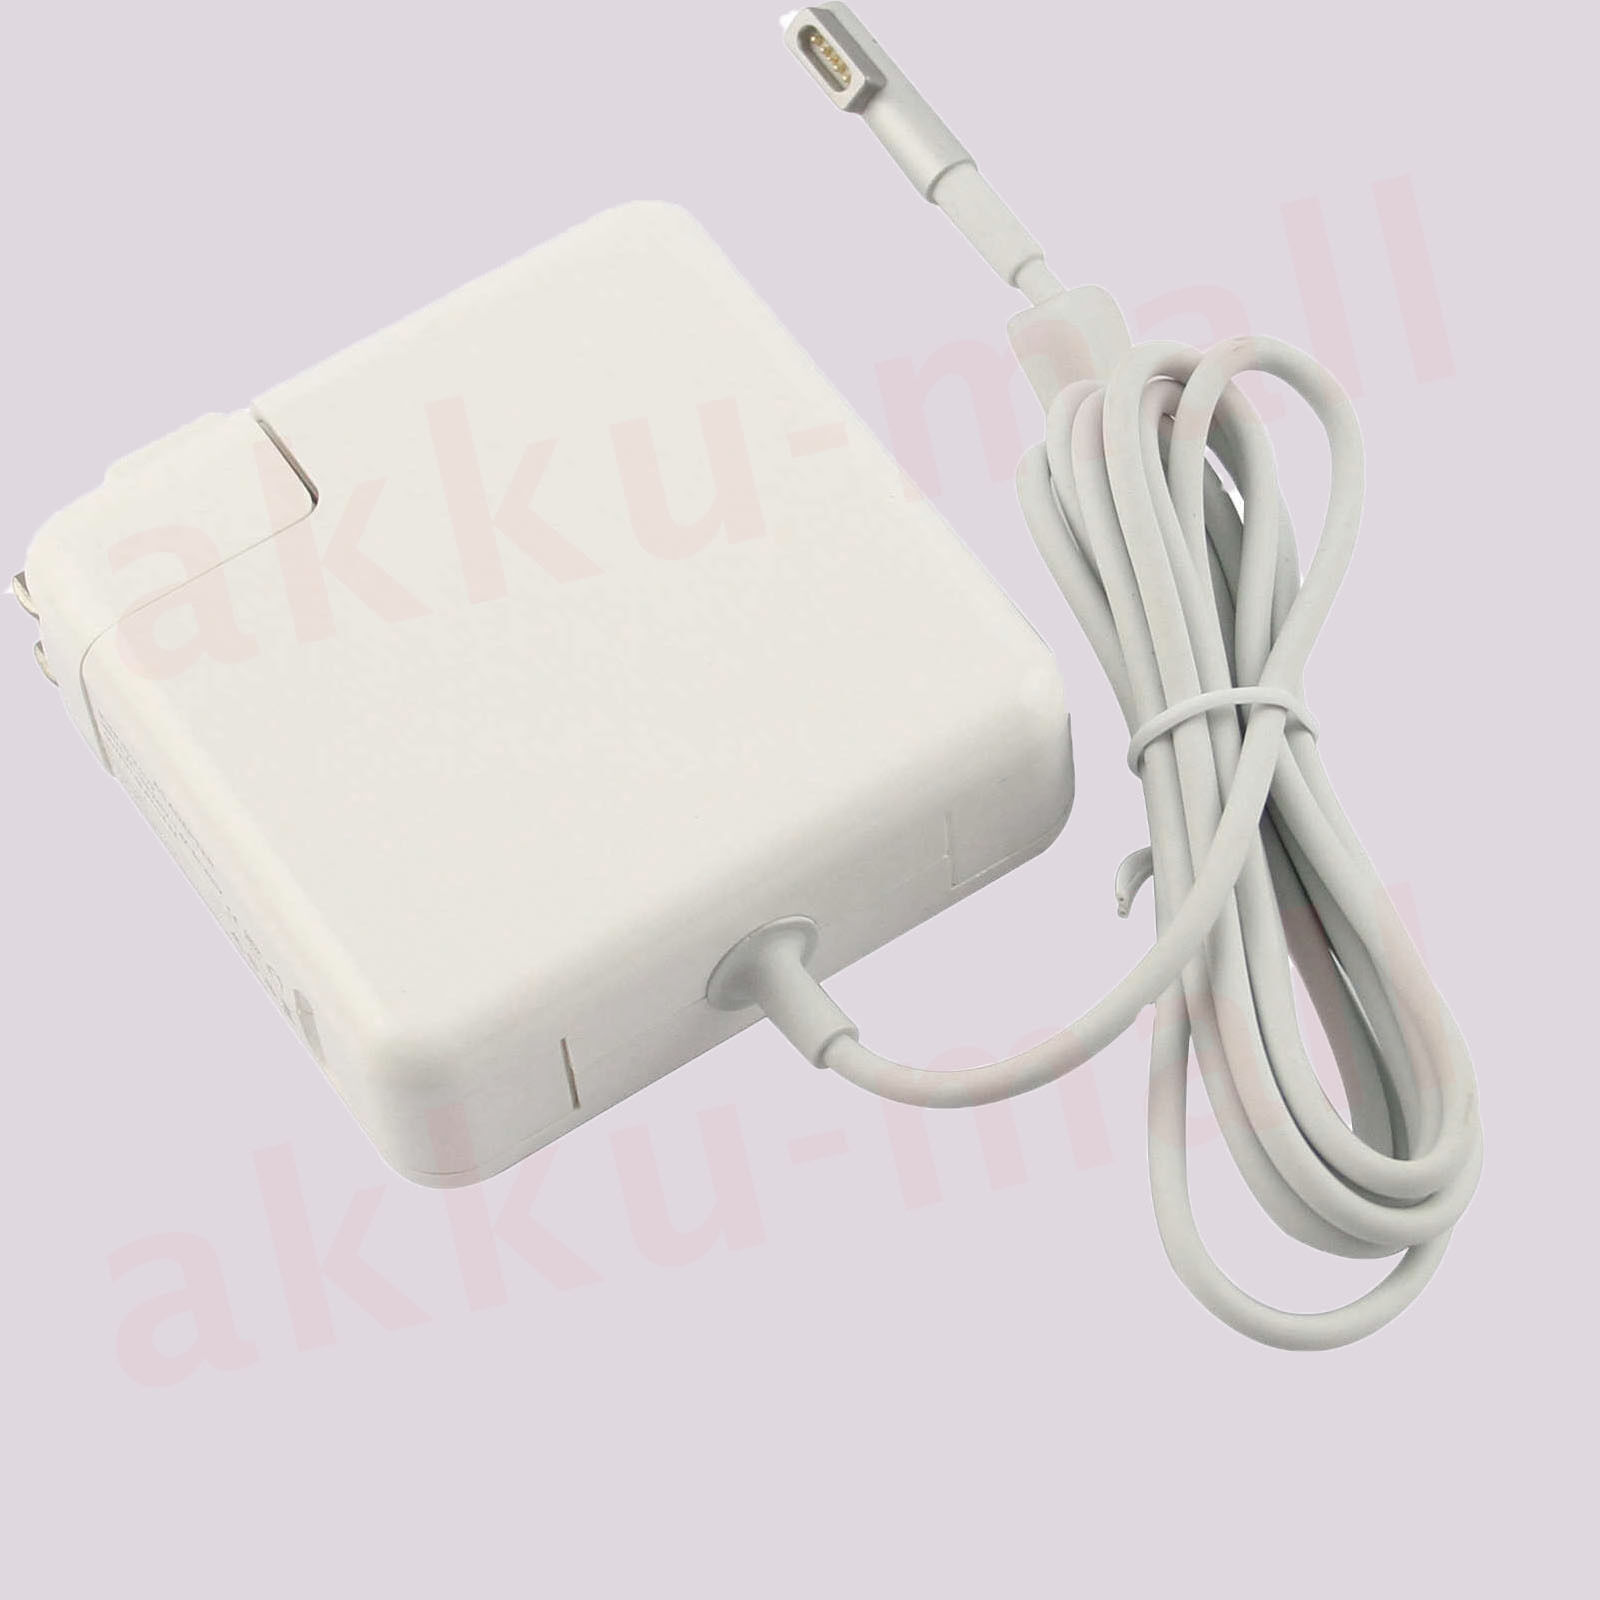 85w Ac Adapter Charge Power Supply For Apple Macbook Pro A1189 A1211 Magsafe A1343 Charger 15 Original A1290 1 Of 4free Shipping